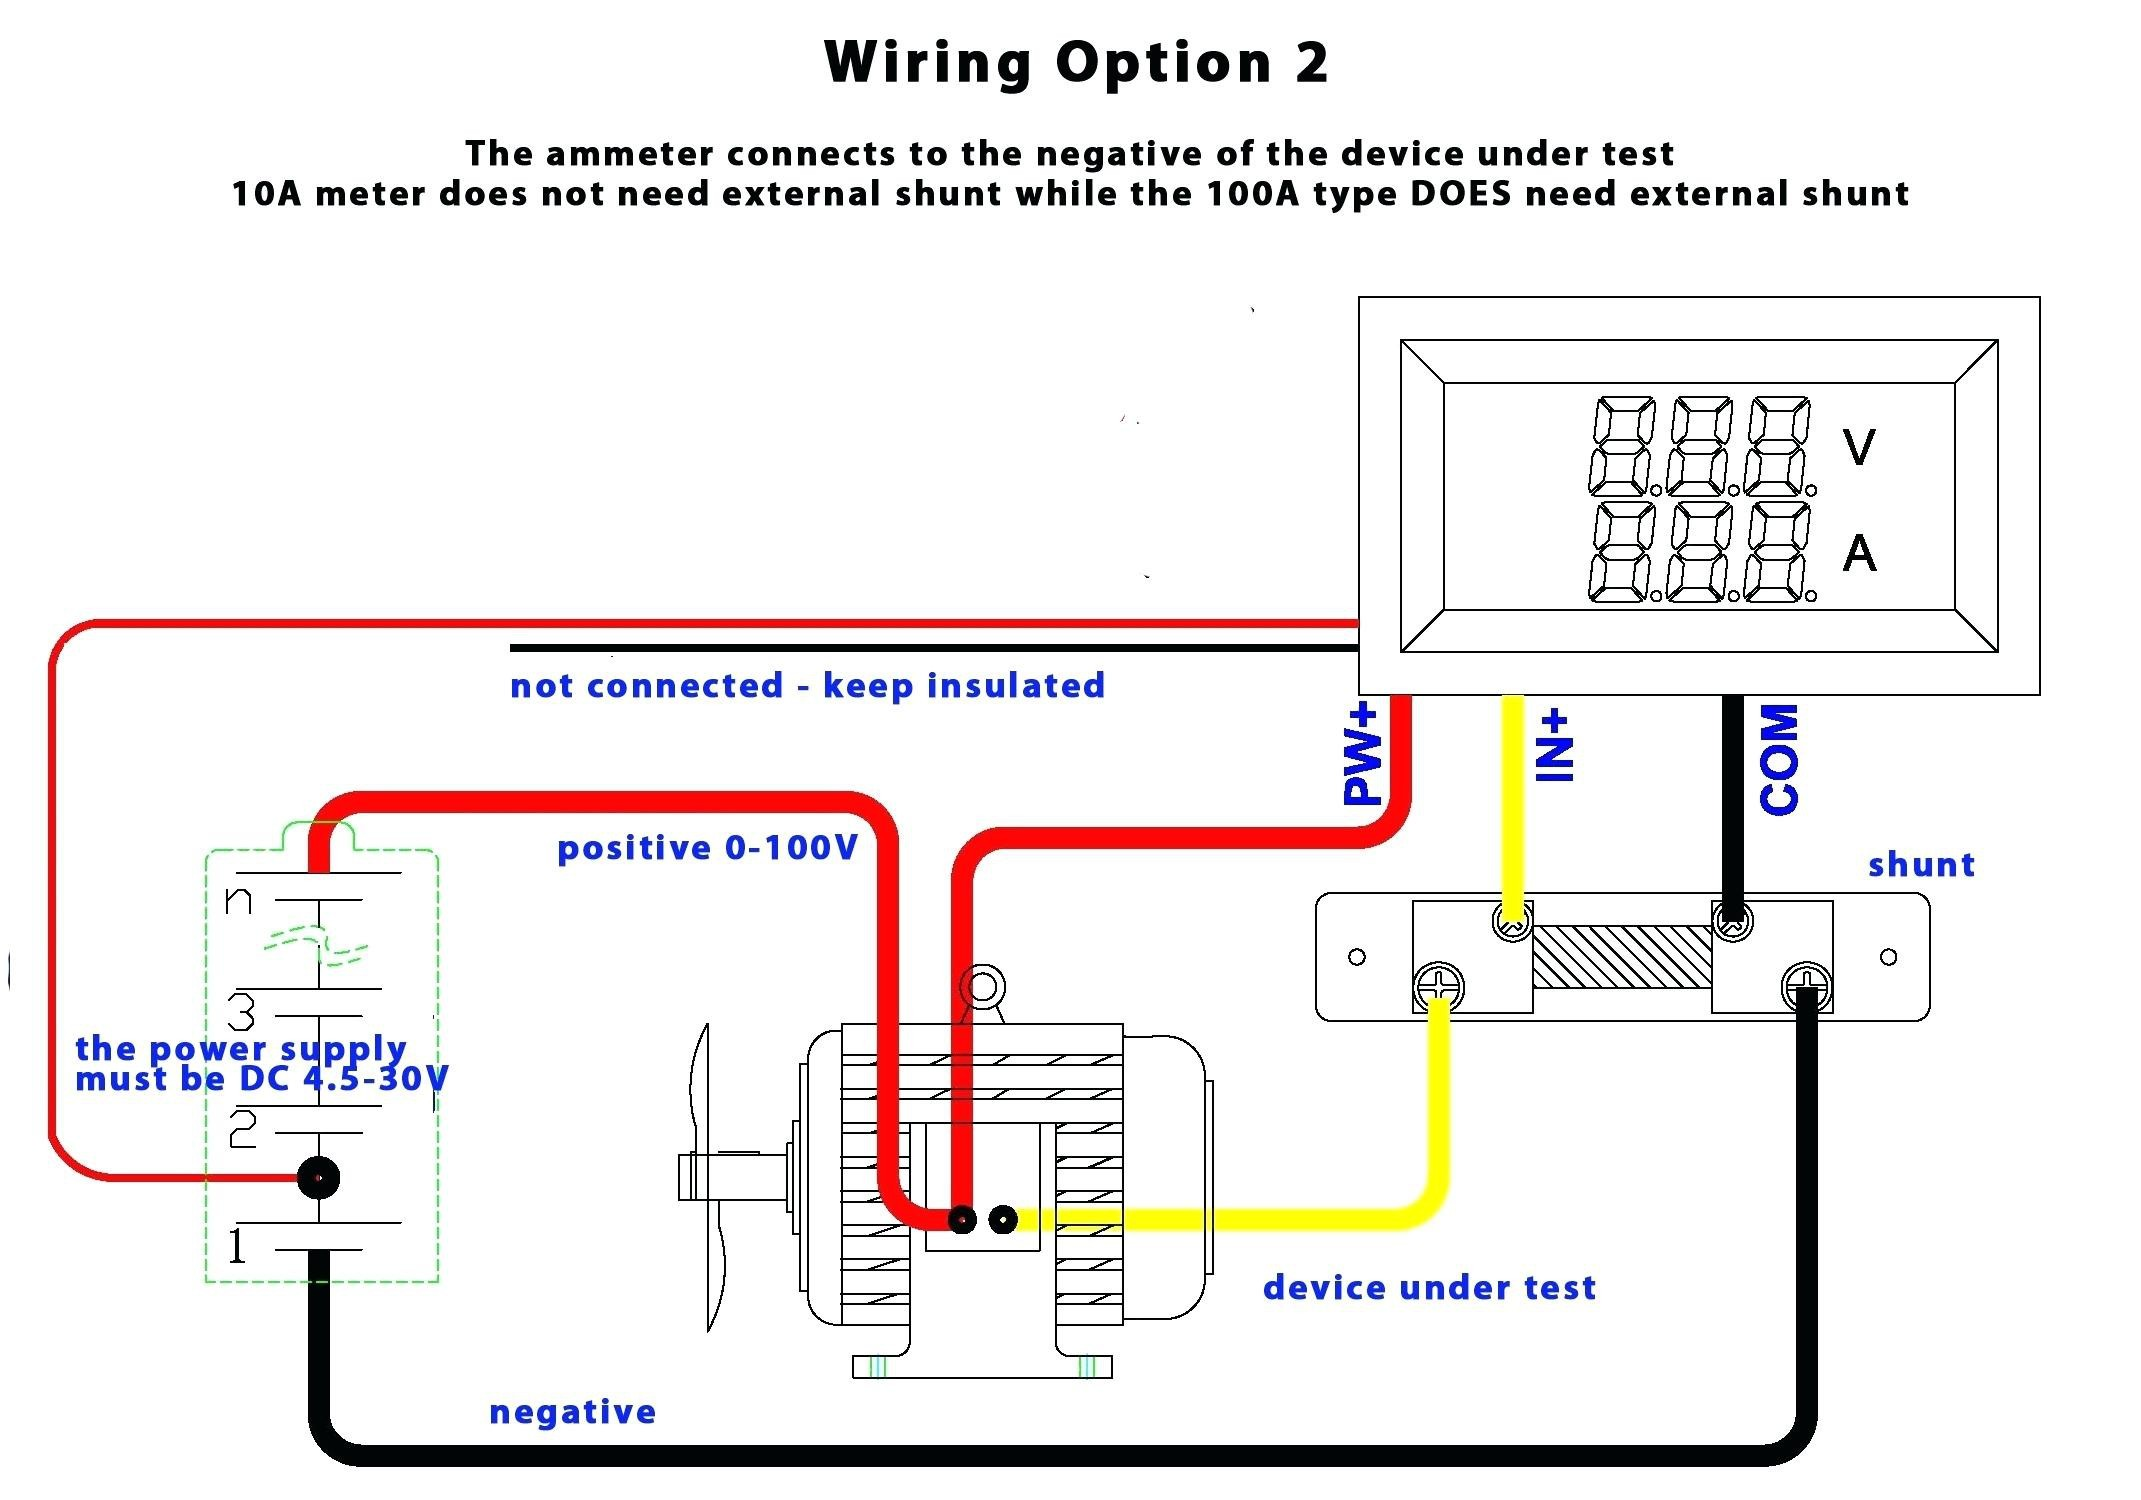 Mac Valve Wiring Diagram 6500 Free Download Diagrams